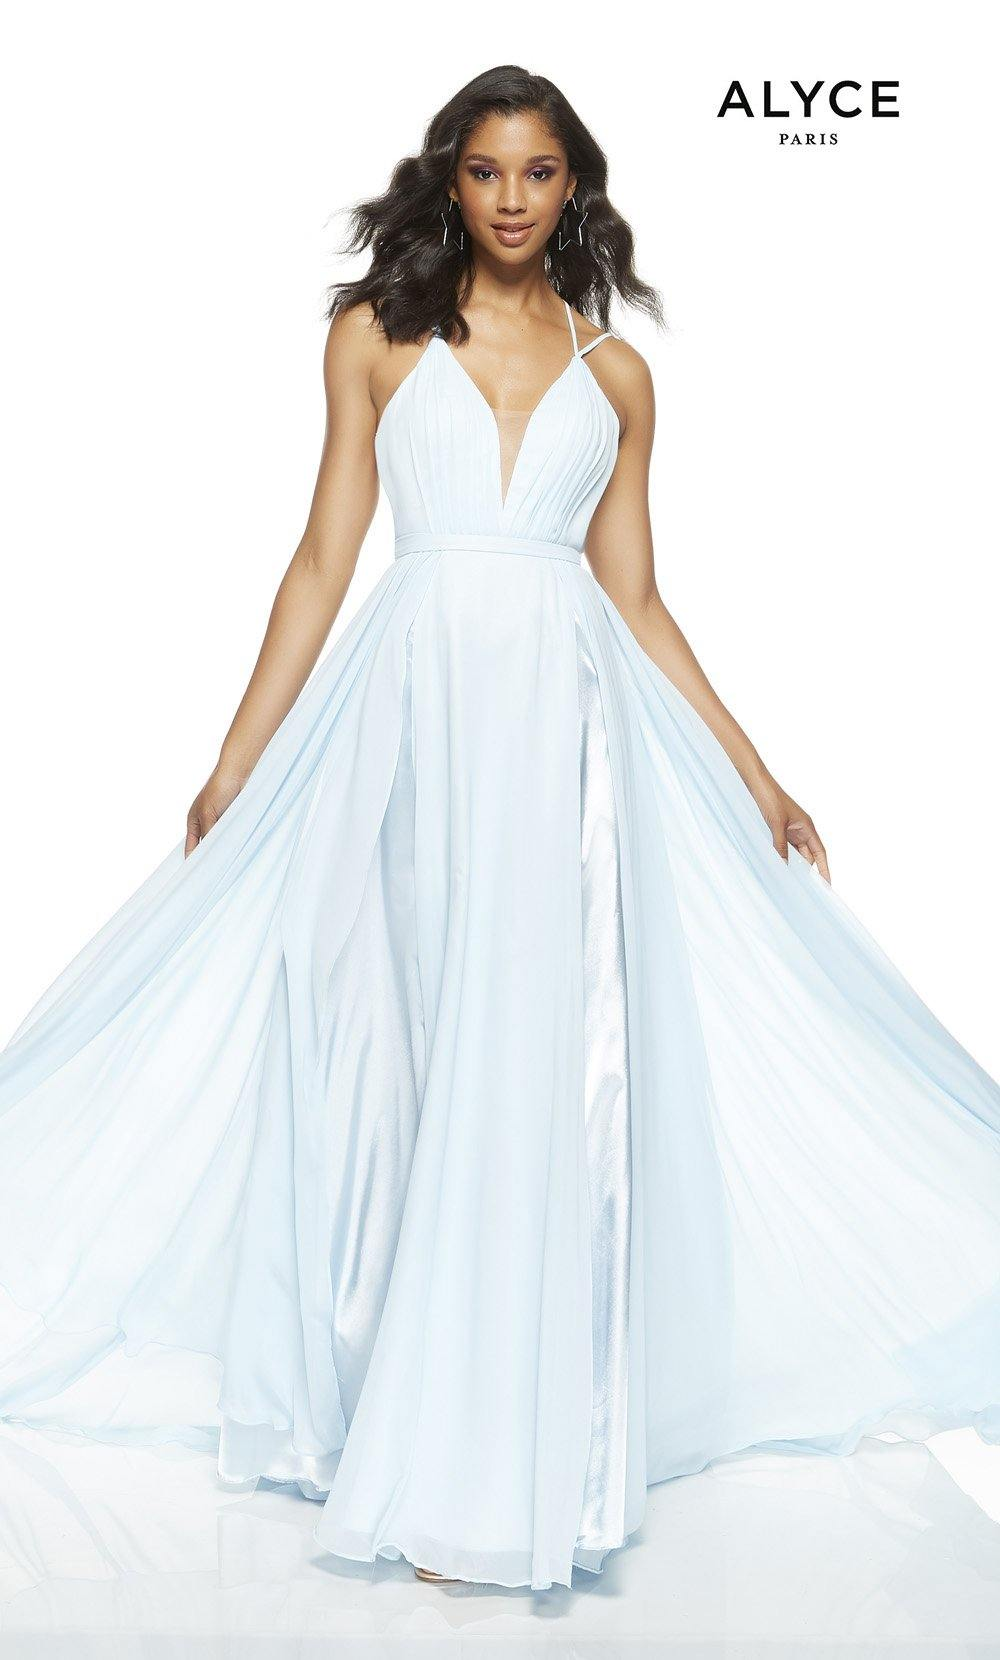 Powder Blue flowy wedding guest dress with a plunging neckline